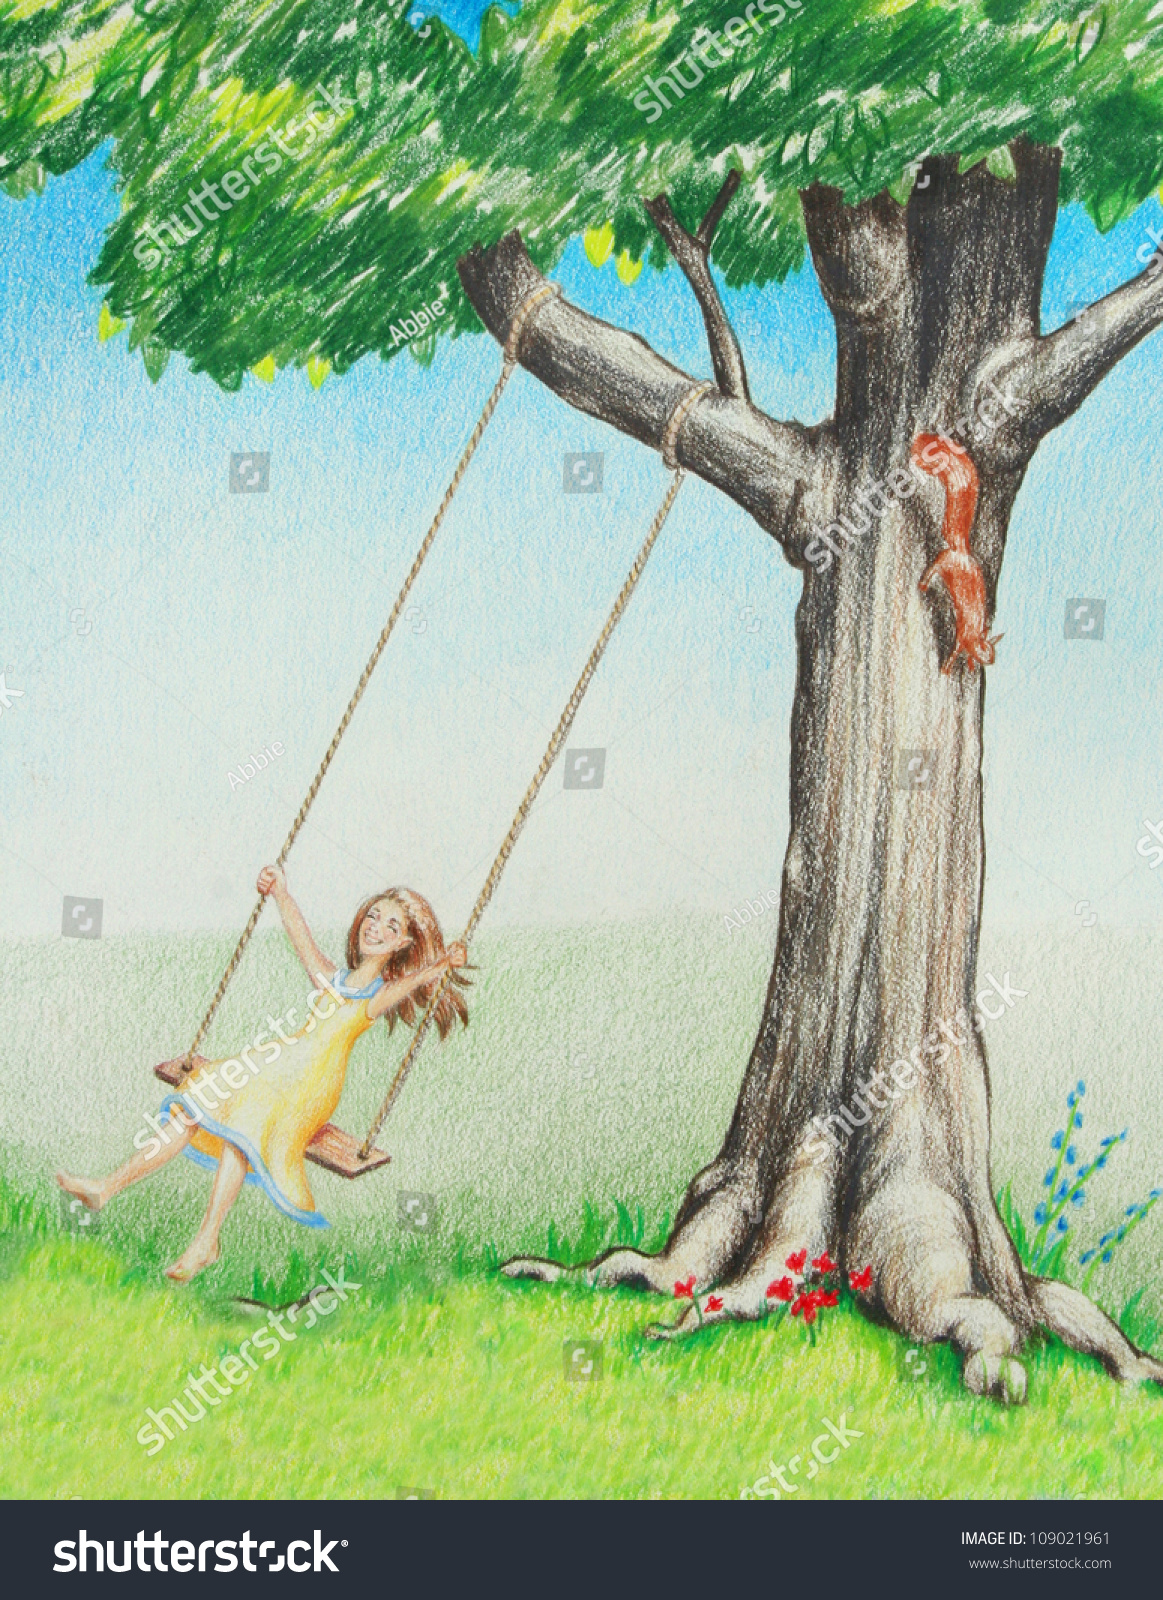 young female girl on tree swing stock illustration